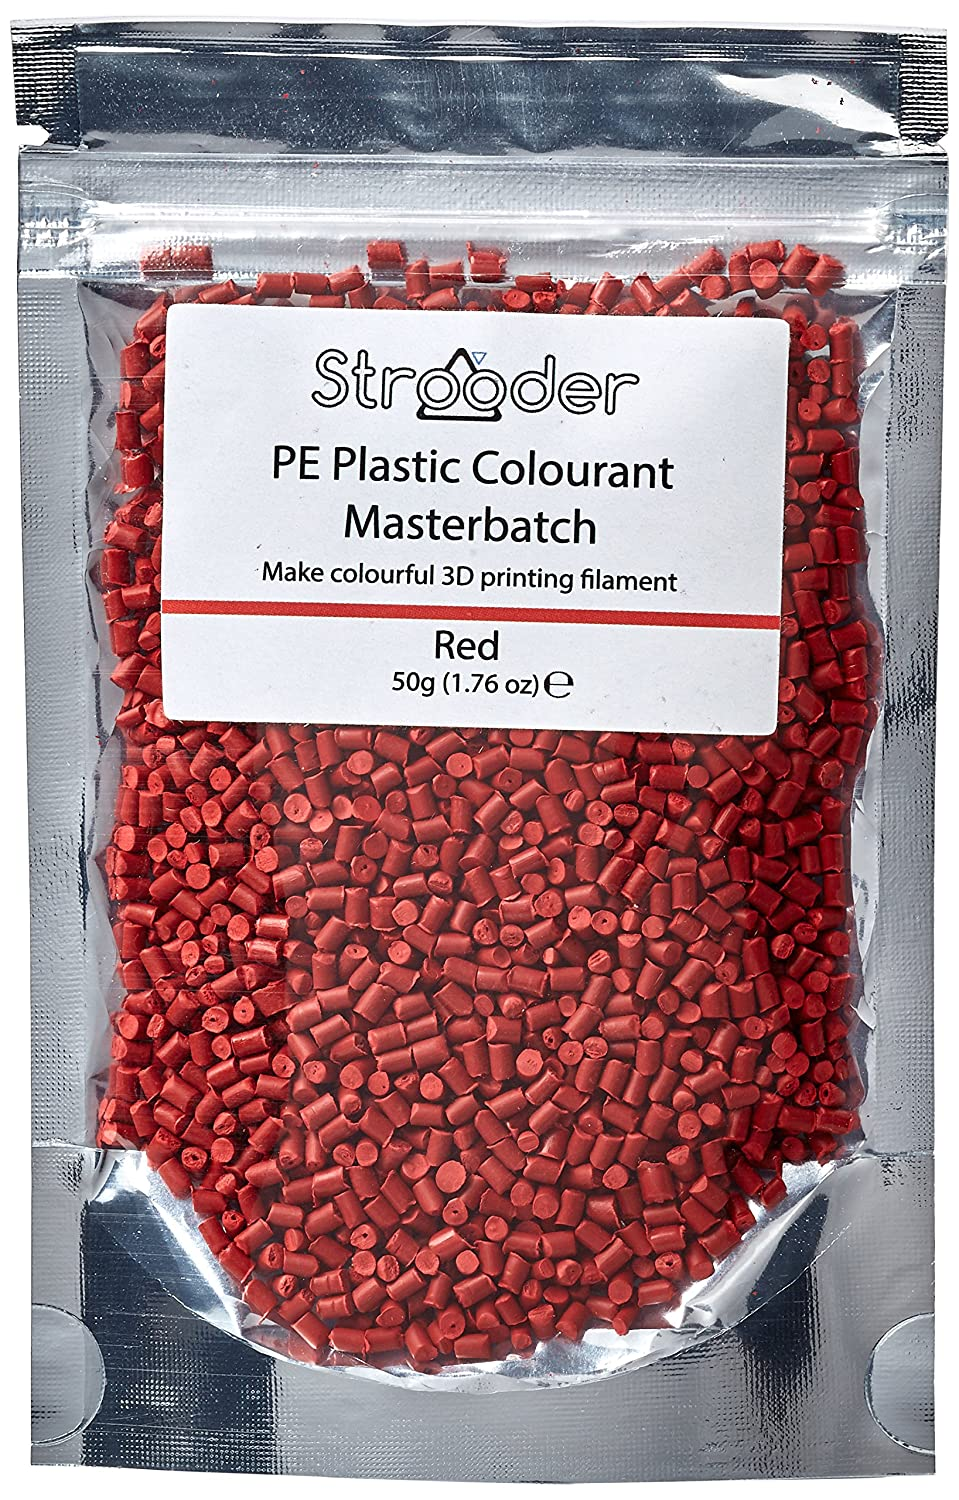 Strooder PE-MBR Master batch colorant for PE, 50 g, Red Omnidynamics